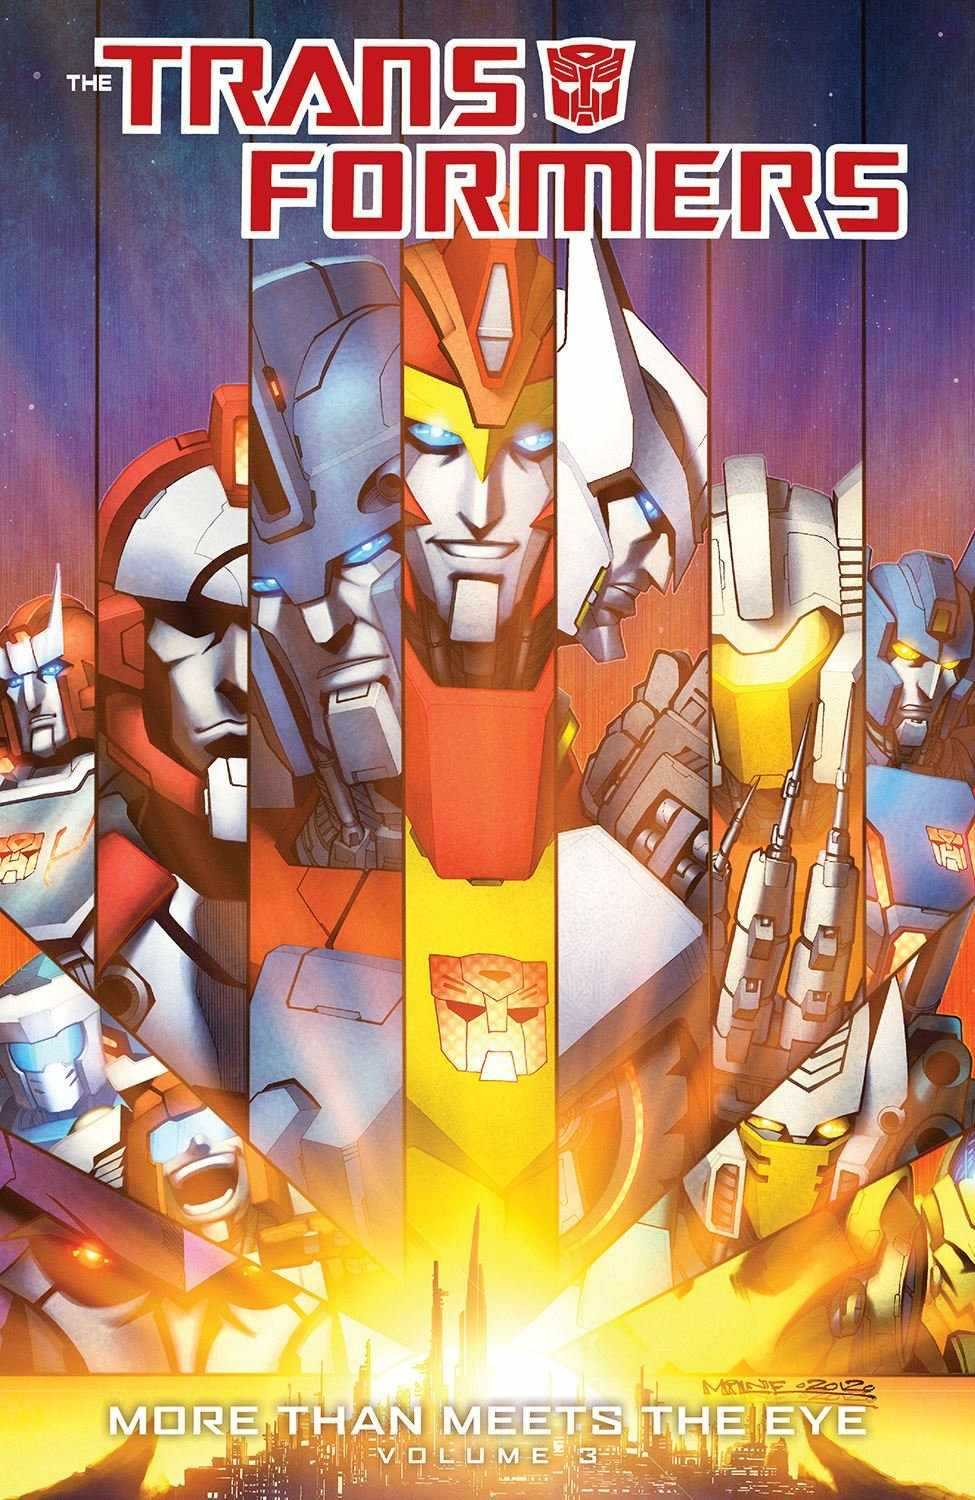 Transformers News: Transformers: More Than Meets The Eye Volume 3 Cover Revealed